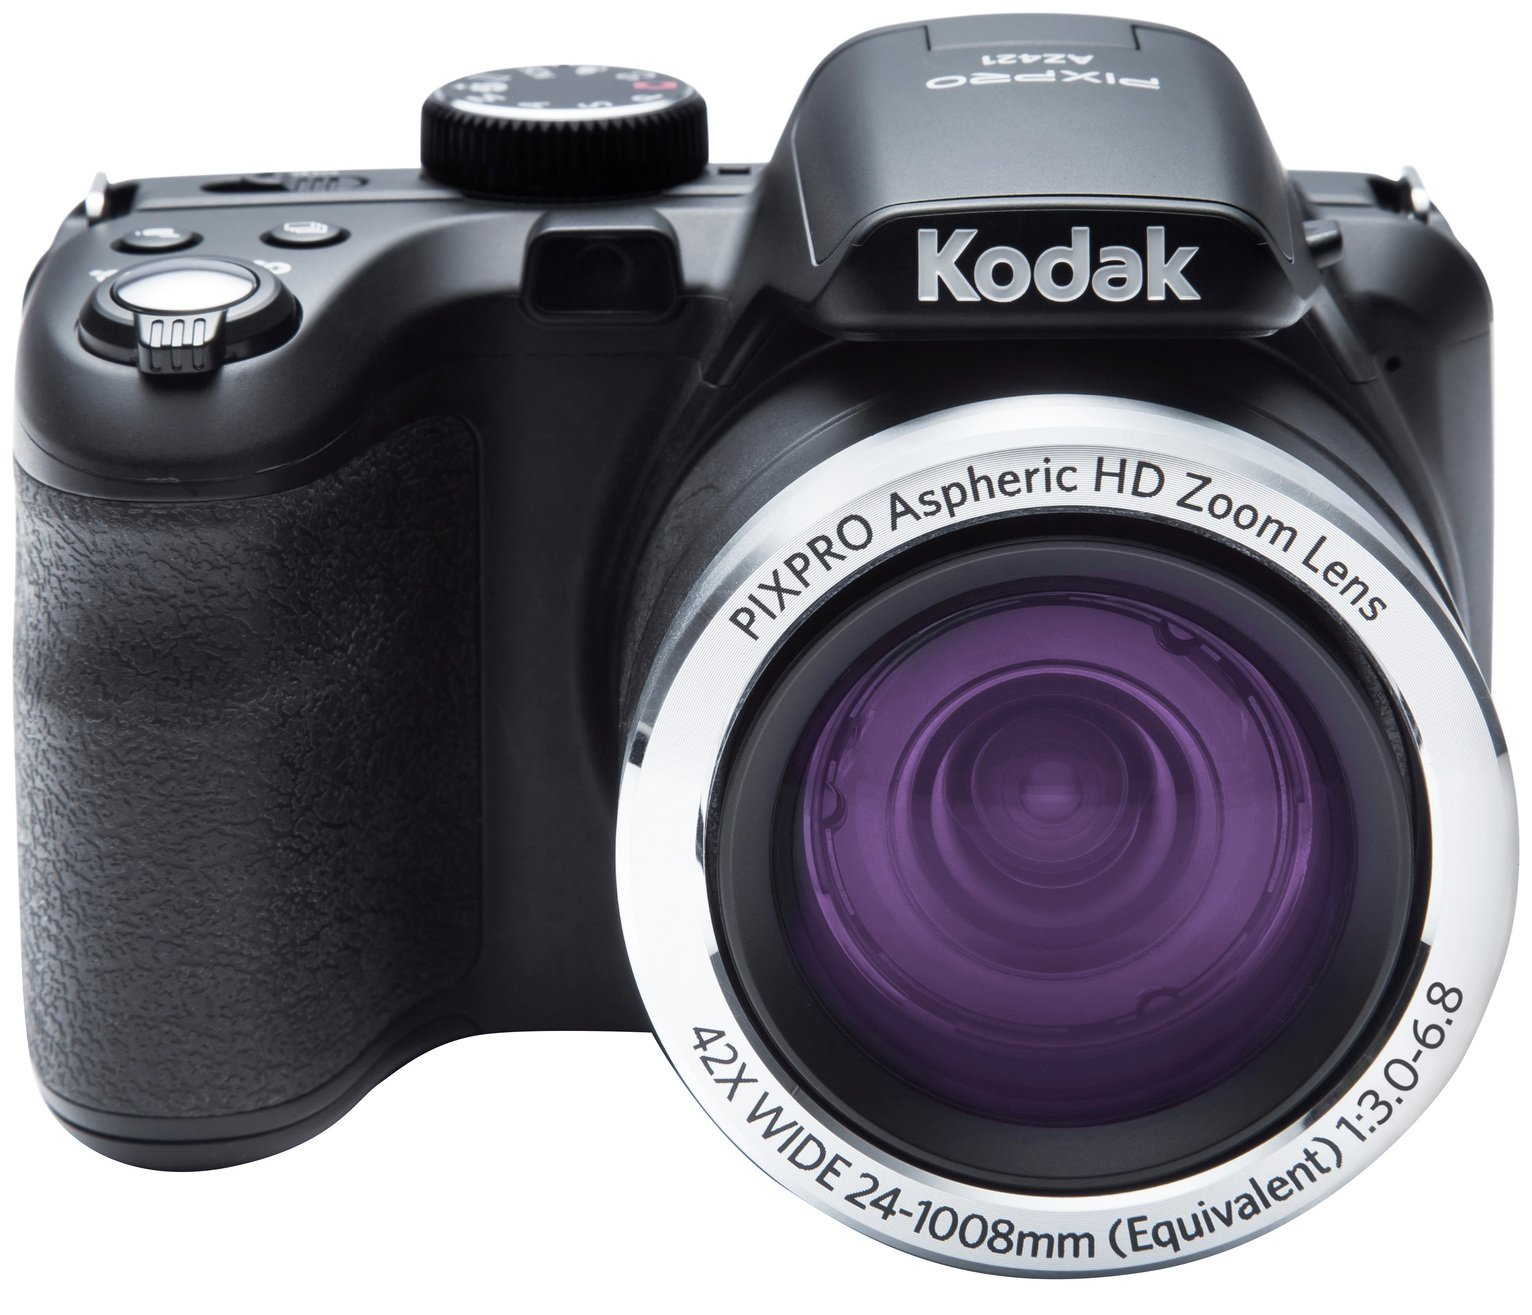 Kodak PixPro AZ421 16MP 42x Zoom Bridge Camera - Black from Kodak Pixpro